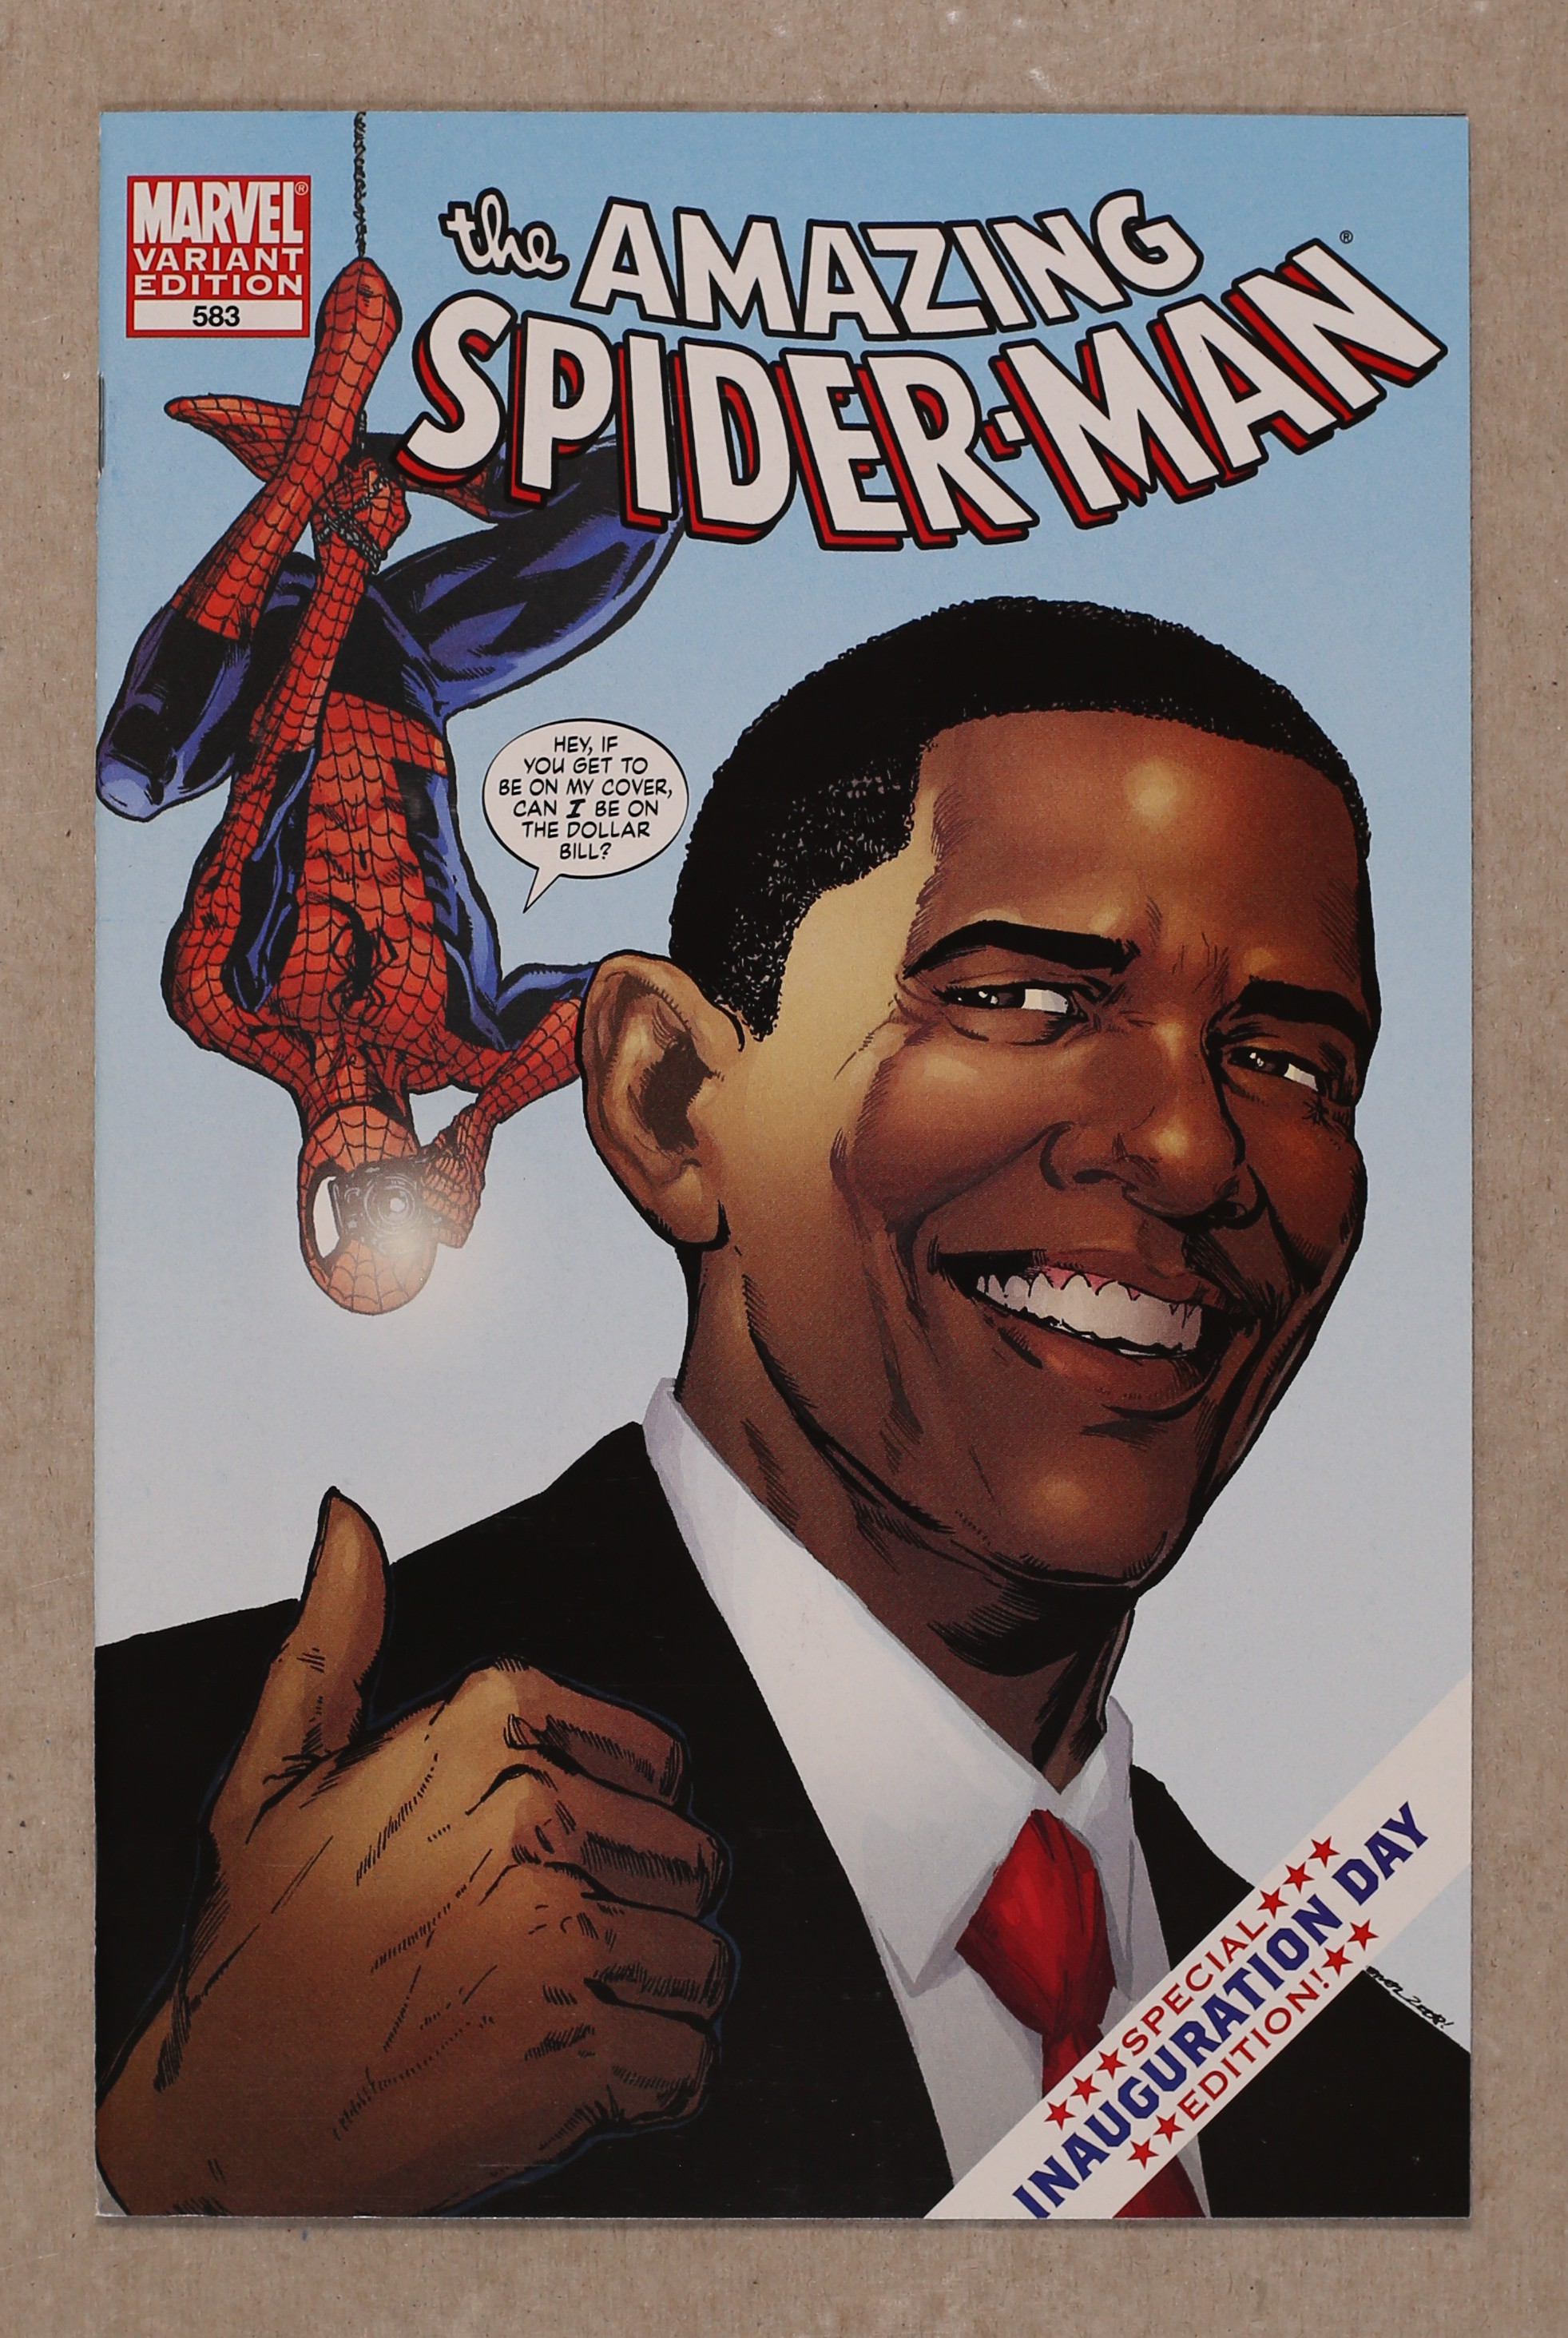 Auctions comic books in other obama comics actual item pictured not a generic image sciox Image collections